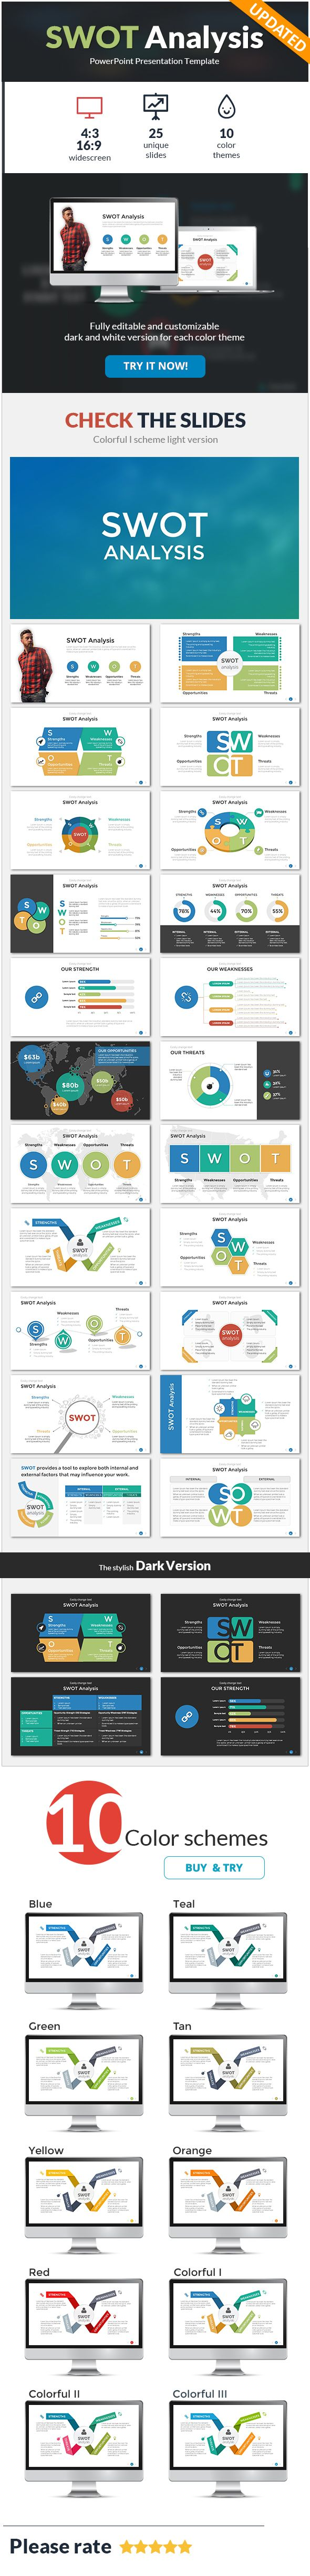 Swot Analysis Powerpoint Template Powerpoint Templates